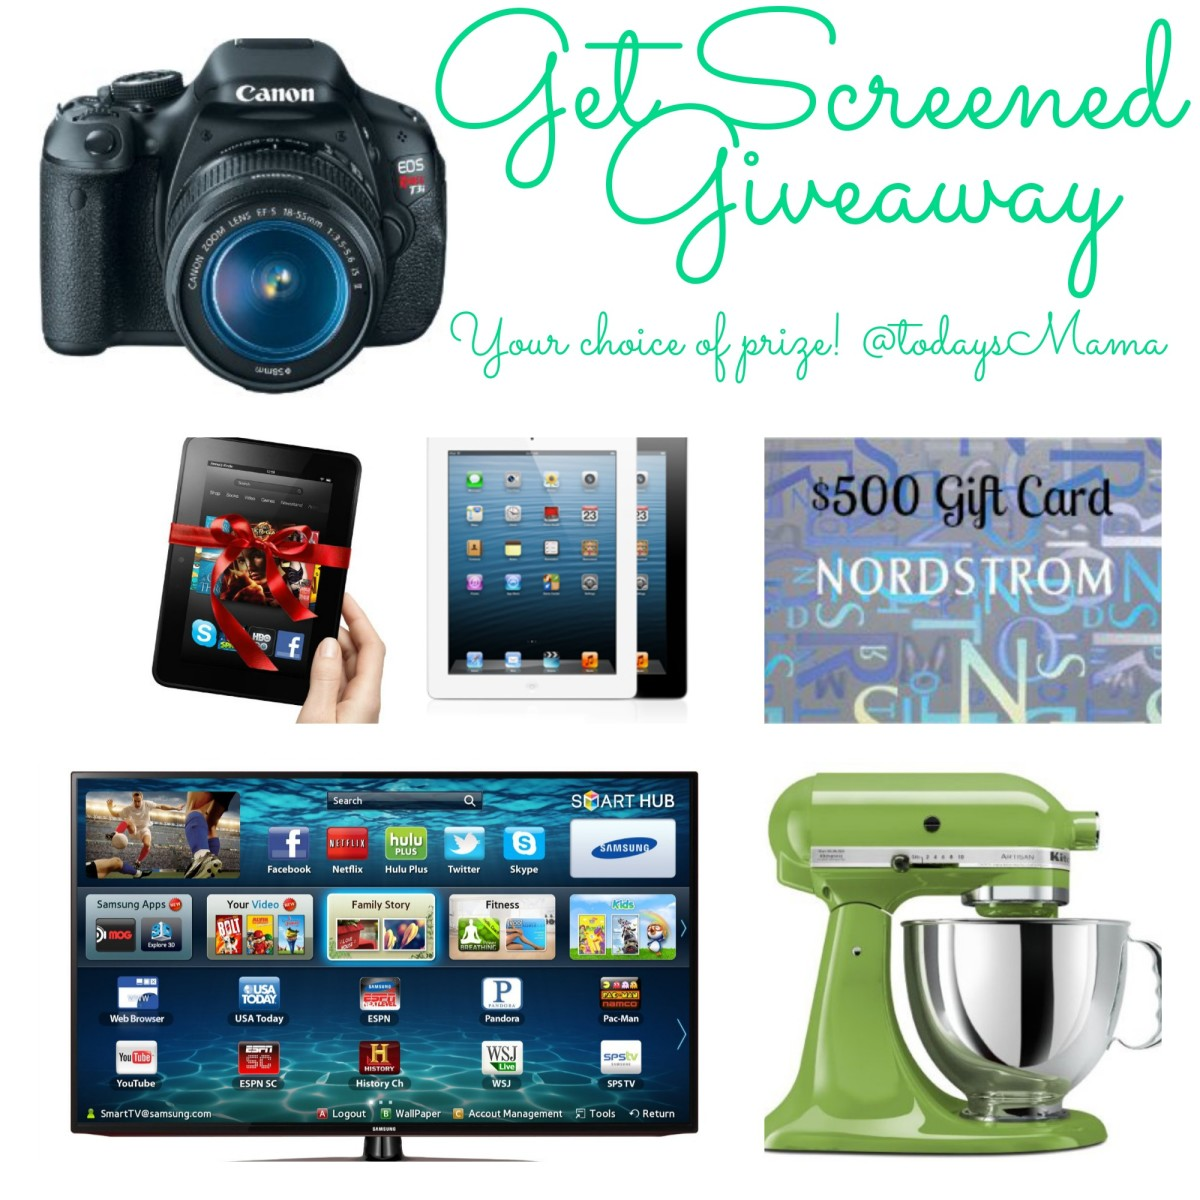 Get Screened - Enter to win your choice of prize AND know your risk